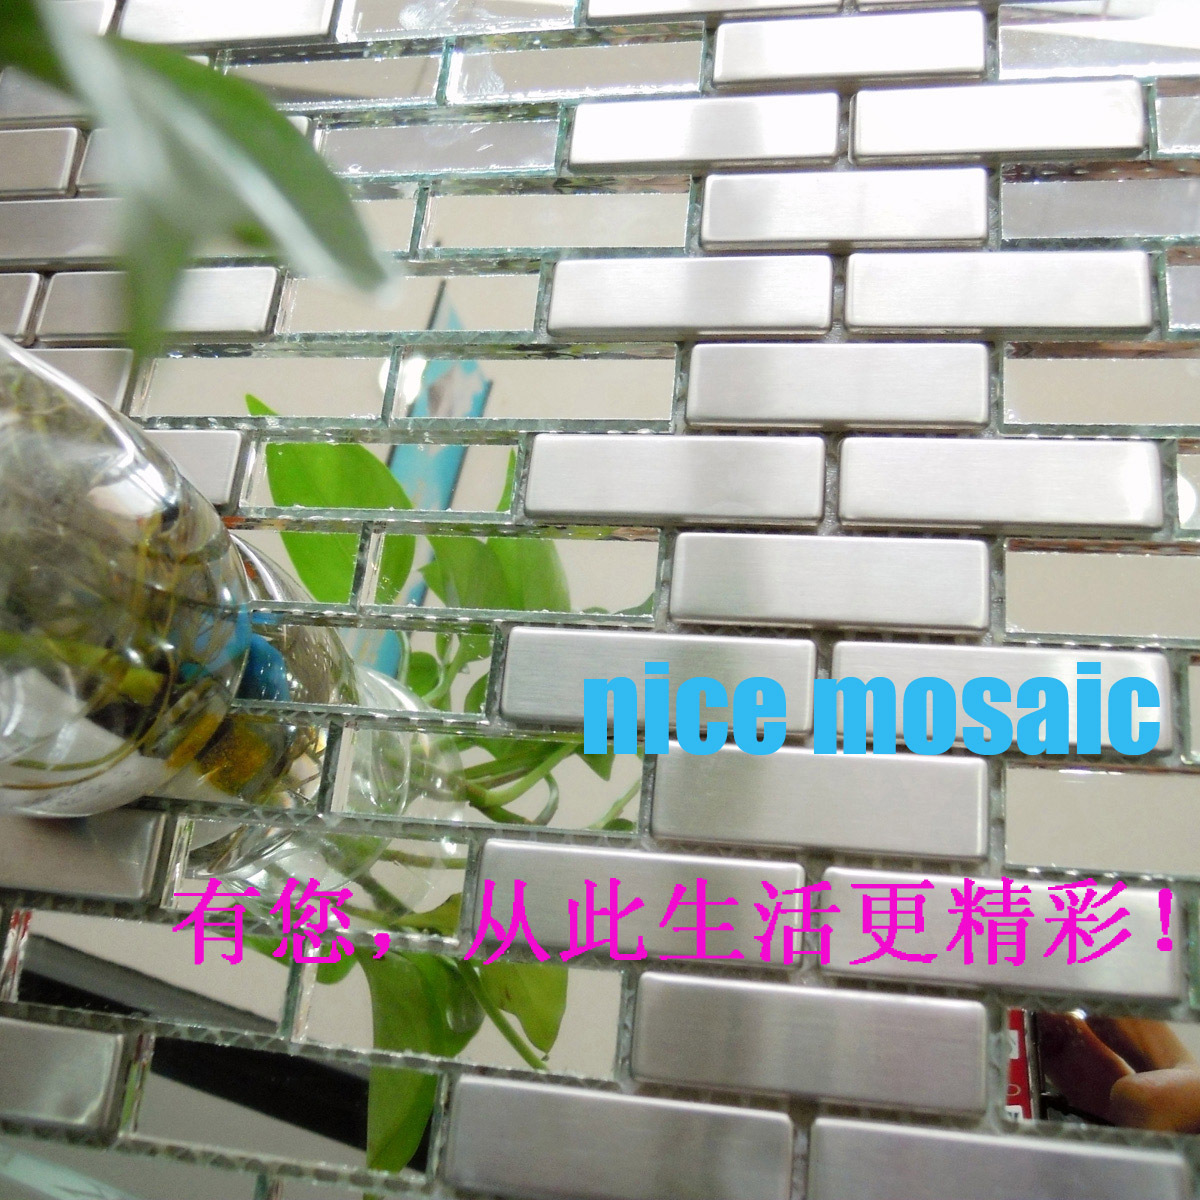 white-silver-modem-stainless-steel-glass-mosaic-mirror-doorcover-entranceway-staircase-font-b-wall-b-font